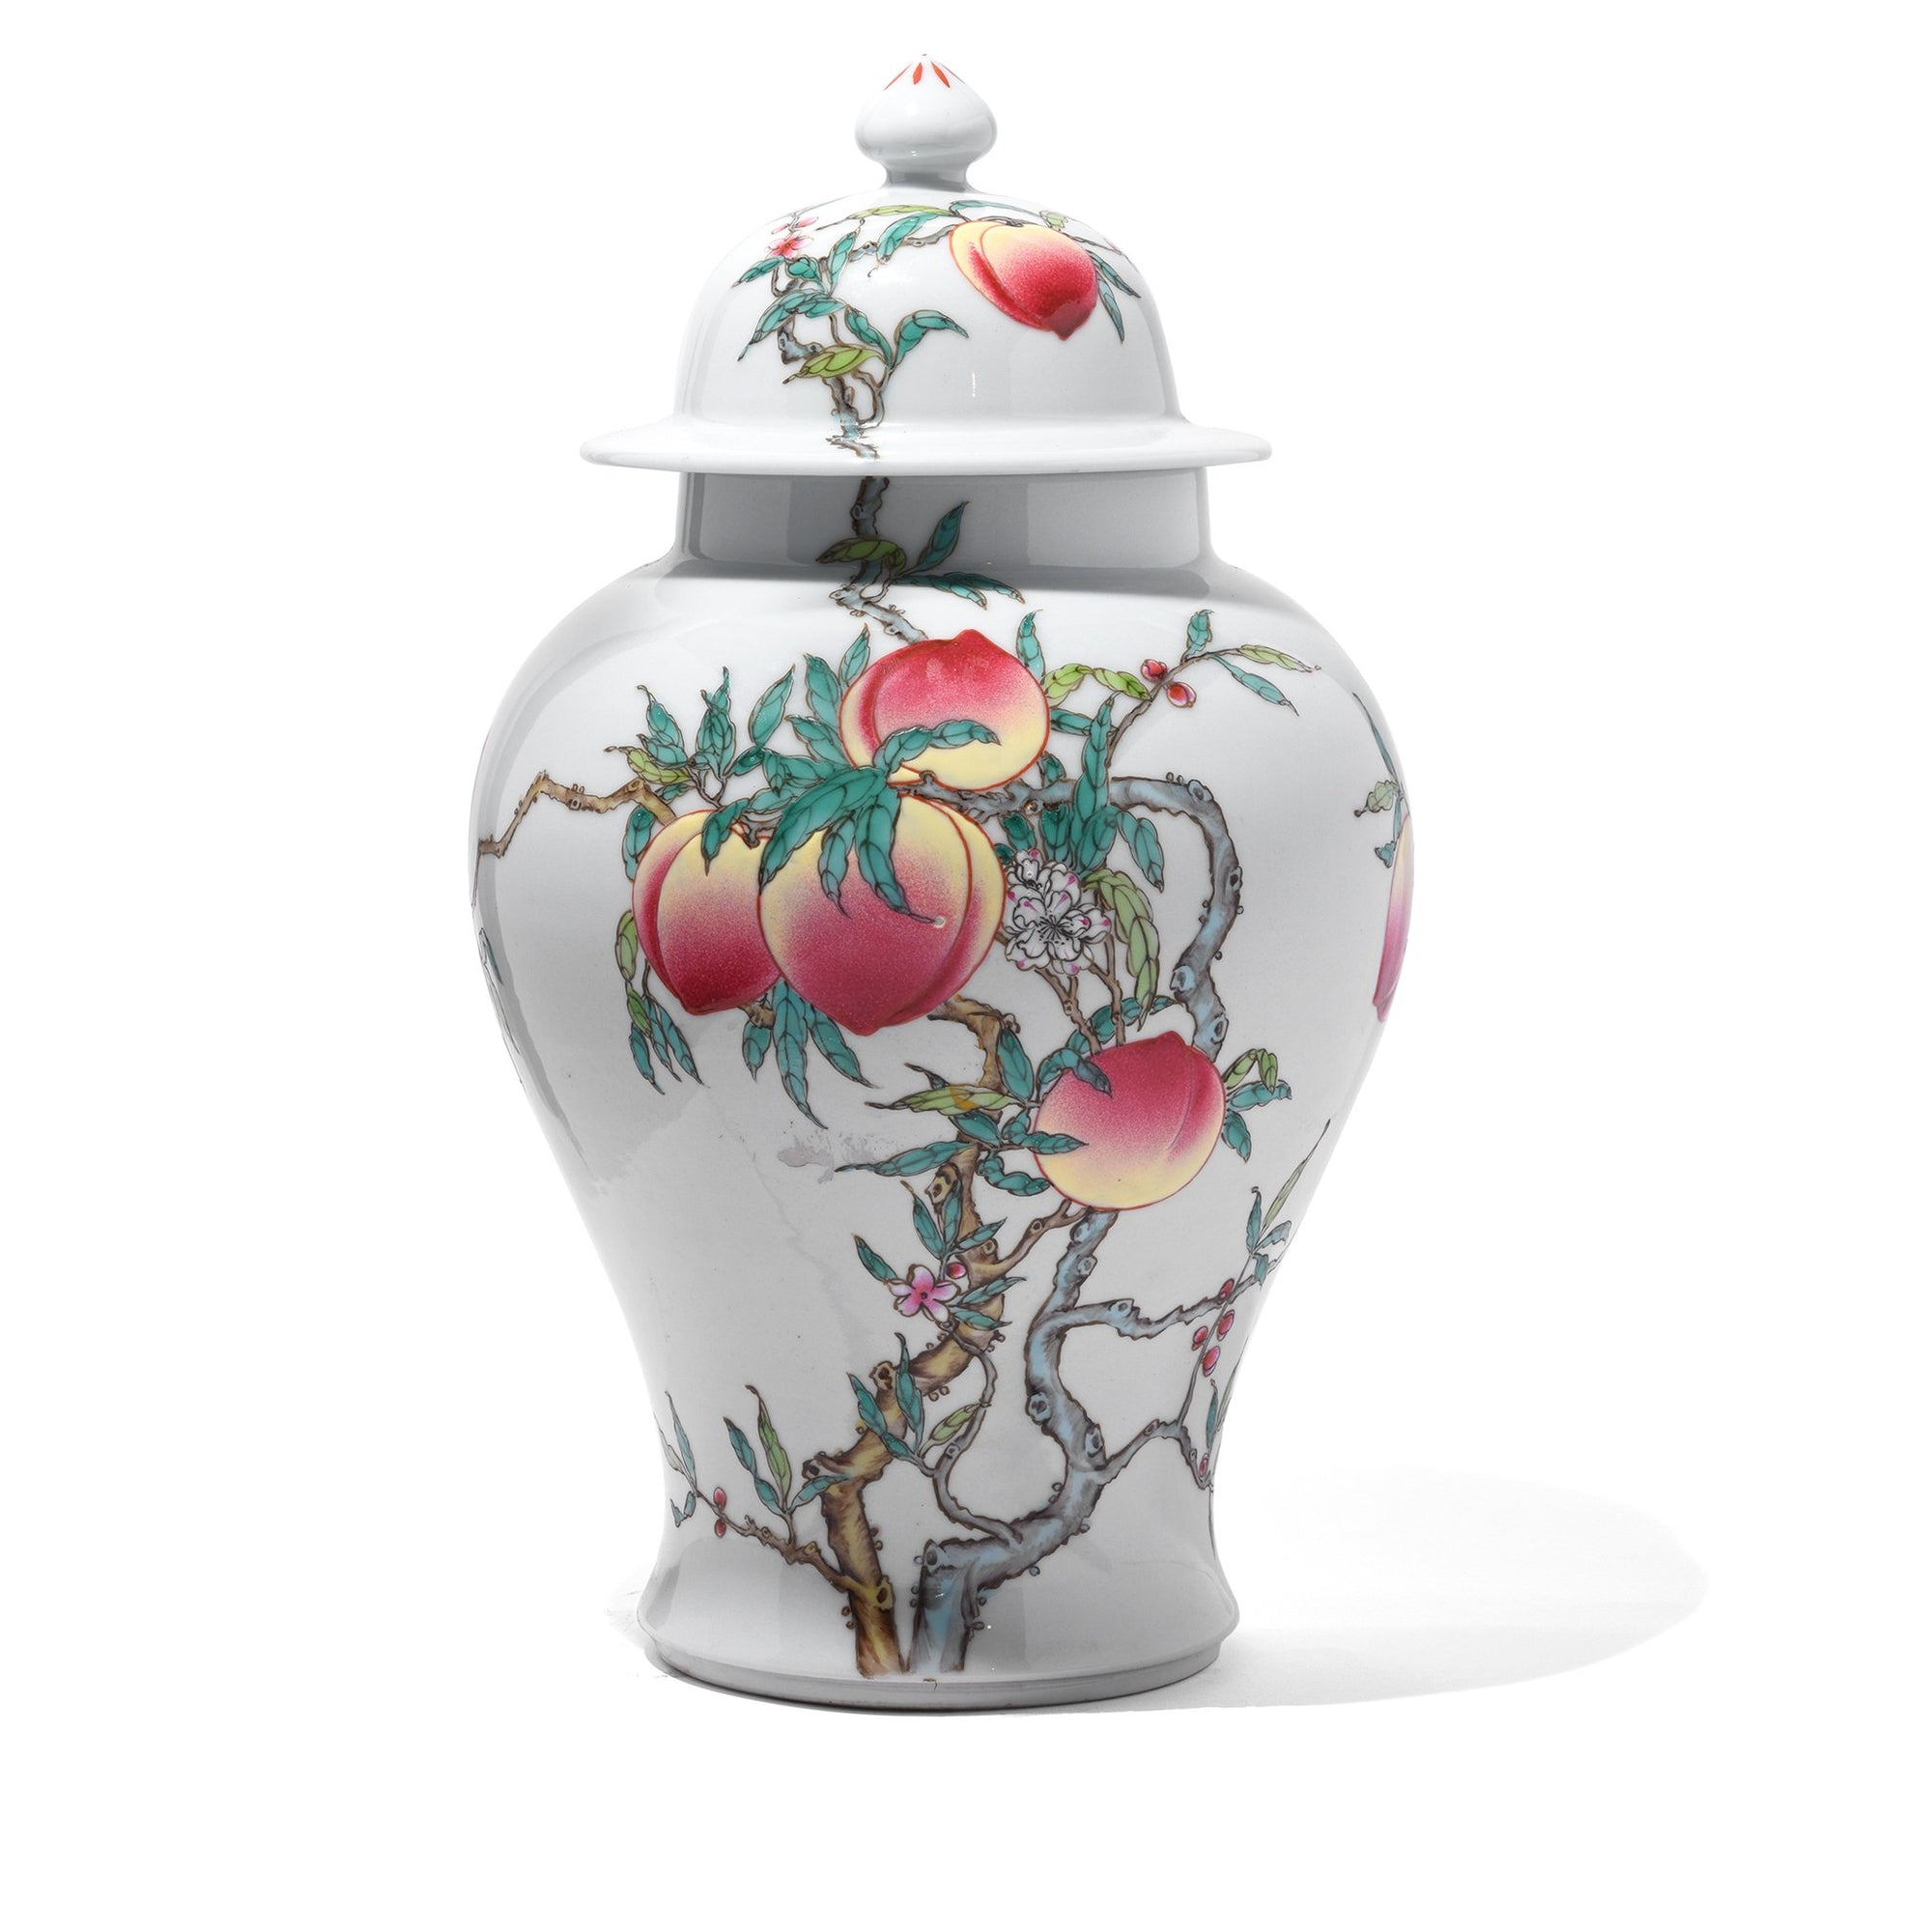 Chinese reproduction Porcelain Temple Jar - Nine Peach Design